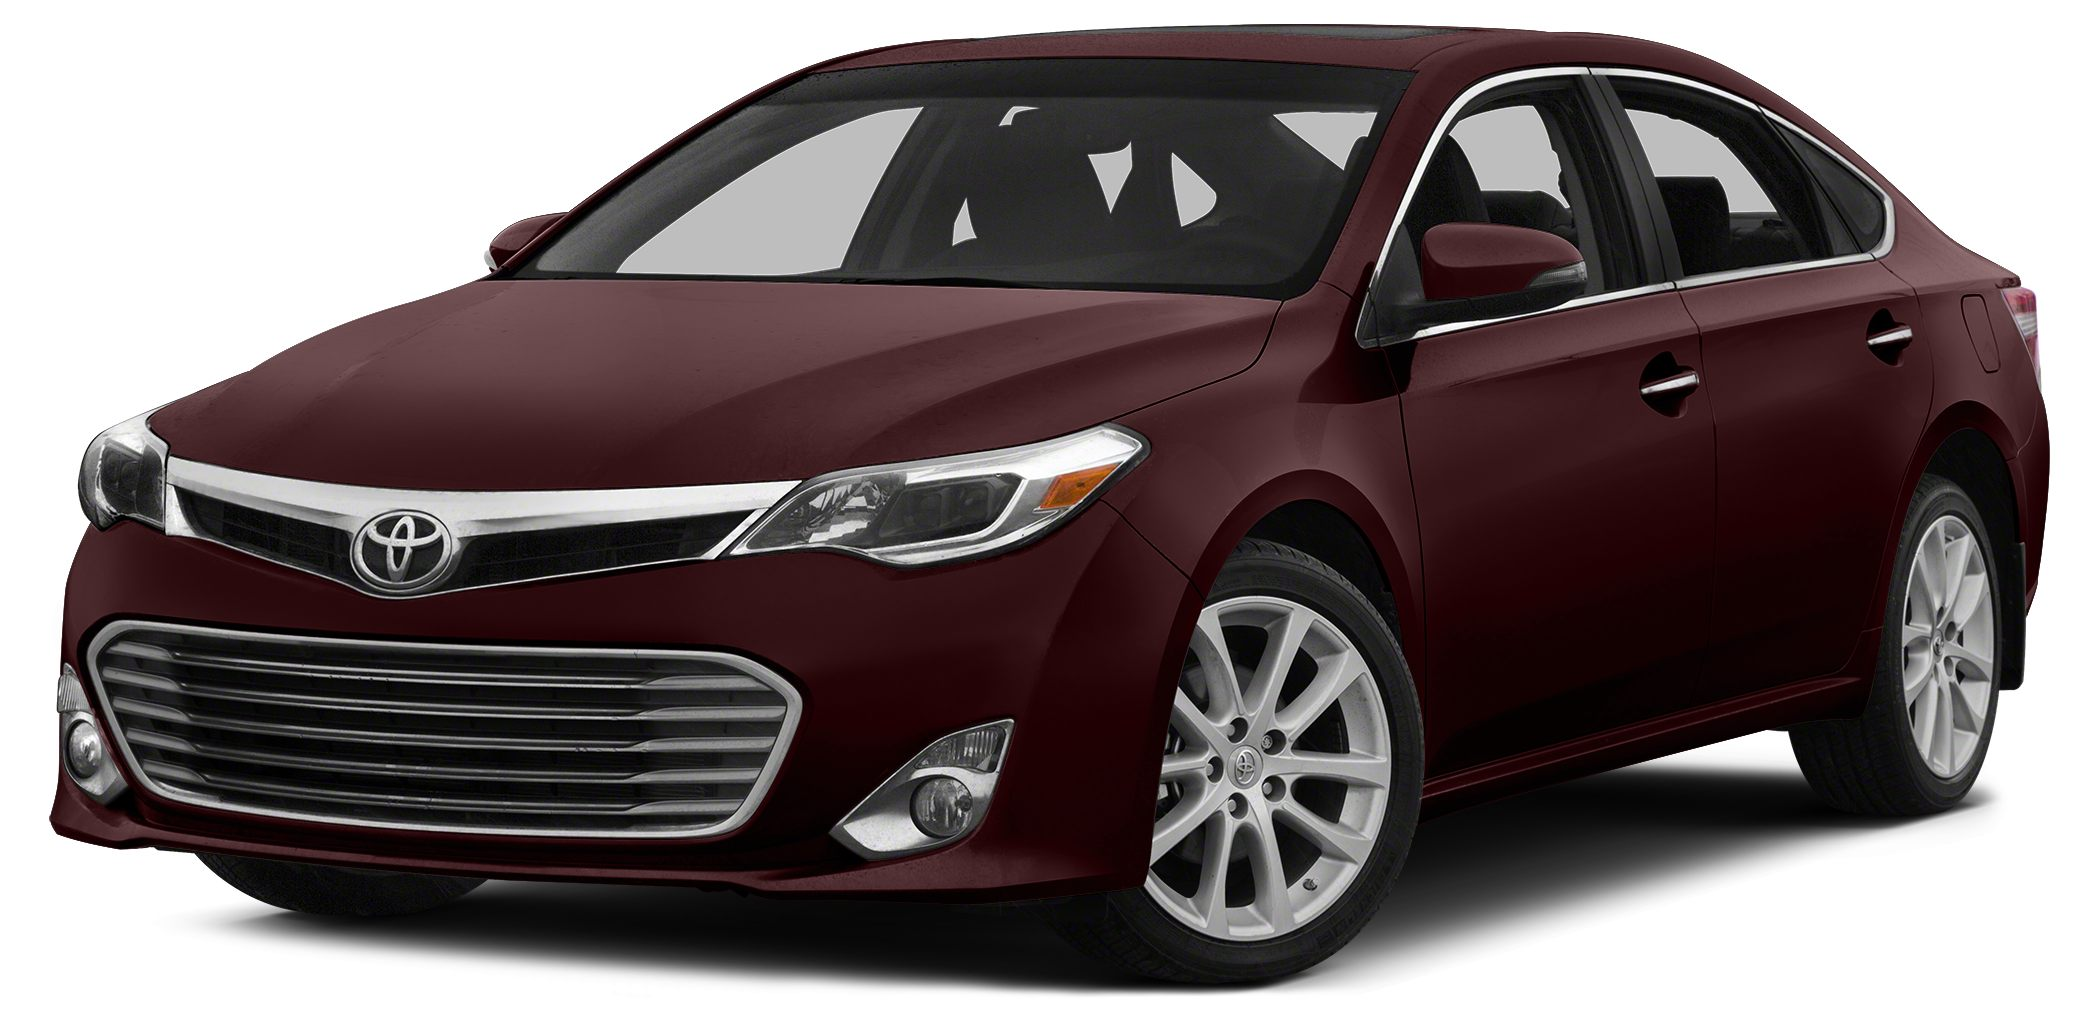 2014 Toyota Avalon XLE Touring CARFAX 1-Owner GREAT MILES 30424 EPA 31 MPG Hwy21 MPG City NAV